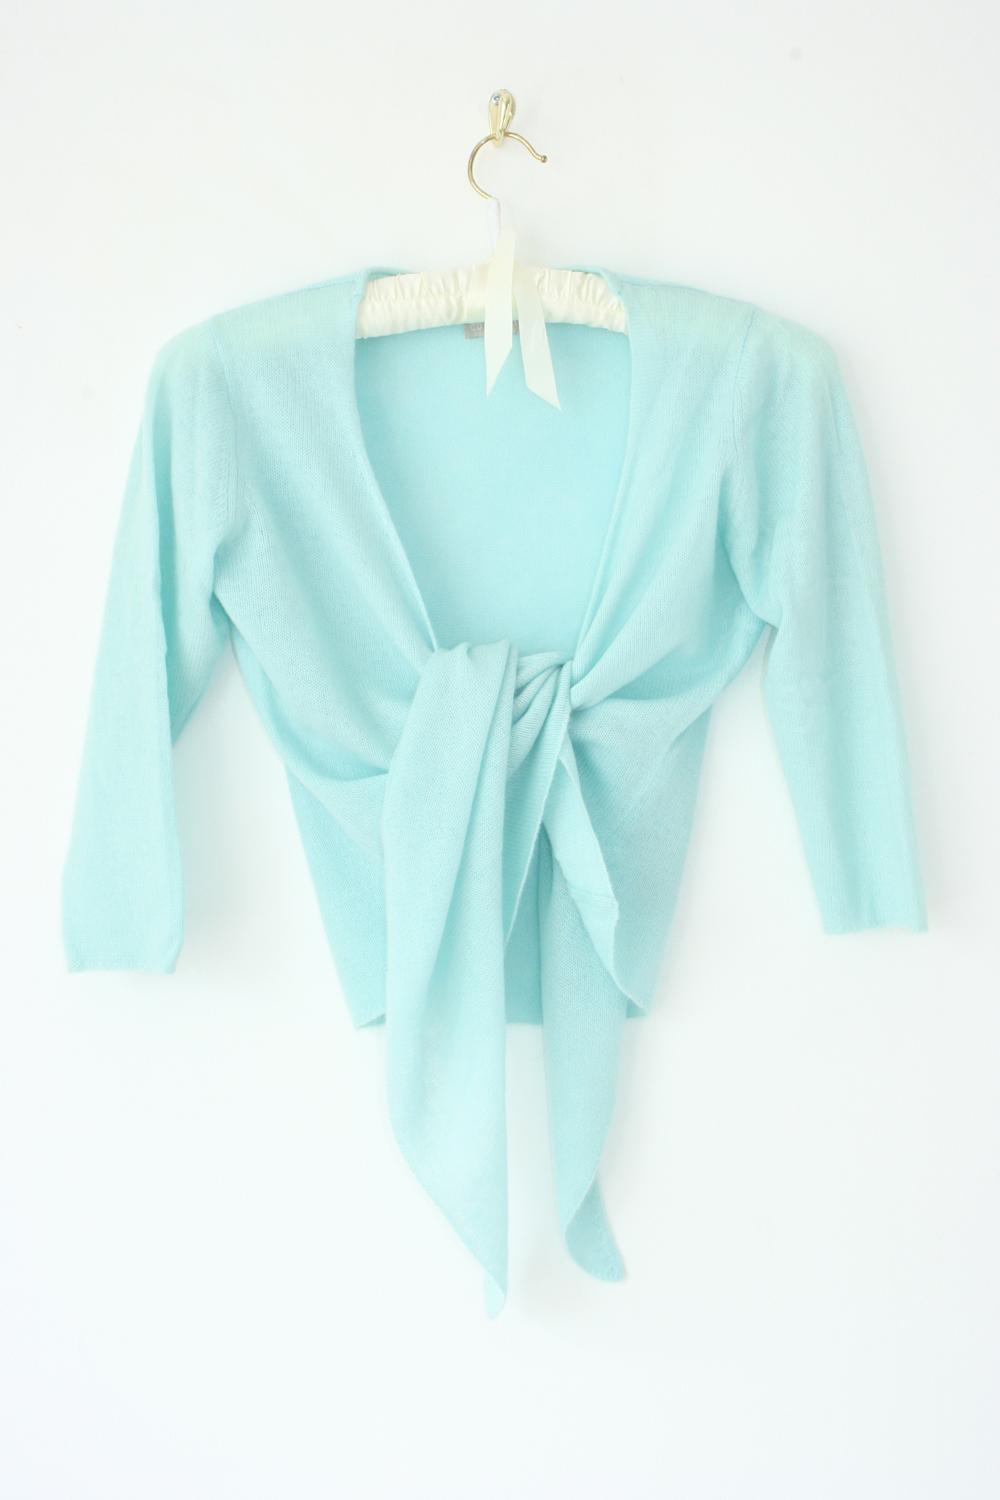 very soft loosely knitted tie cardigan - fits up to size 14, the perfect cover up